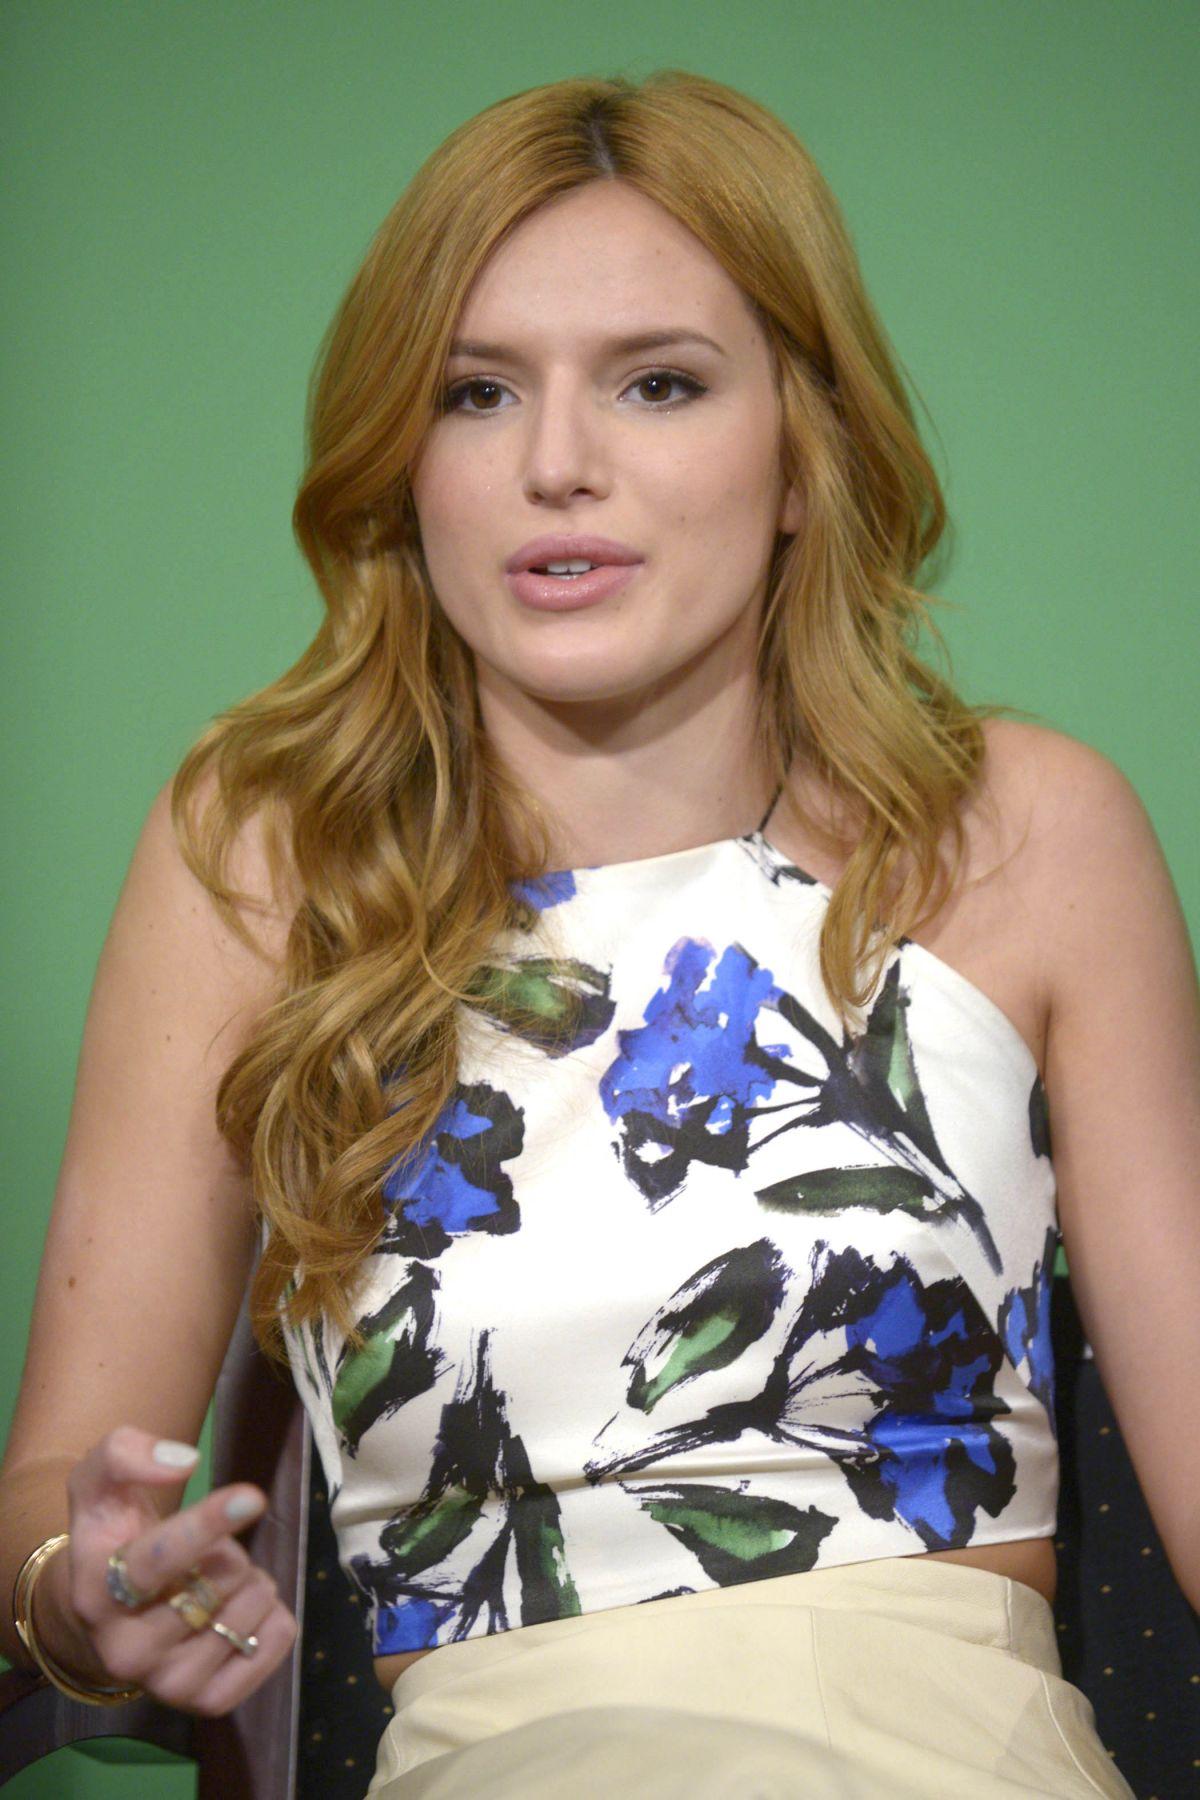 BELLA THORNE at Fox 5 Good Day New York in New York – HawtCelebs